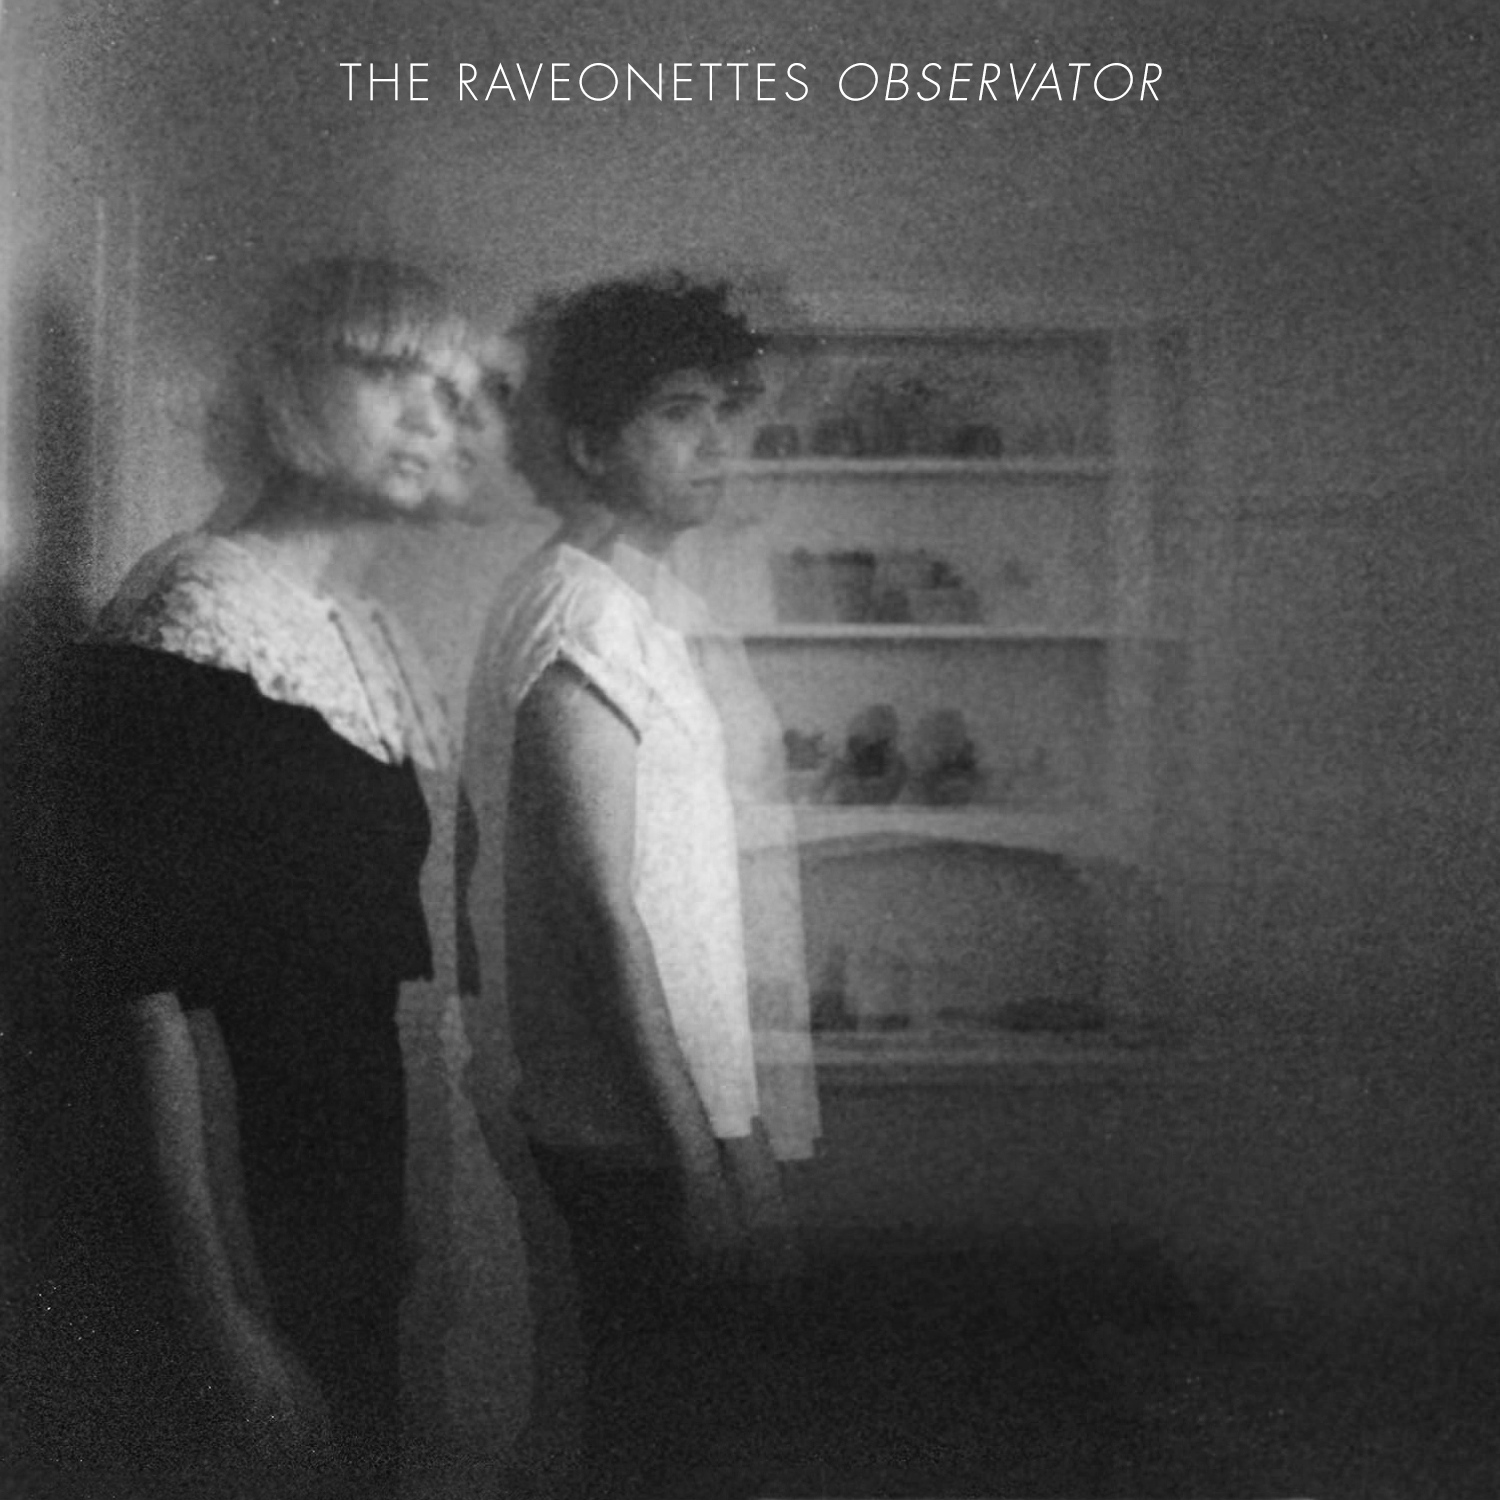 observator raveonettes16 New Music: The Raveonettes   She Owns the Streets